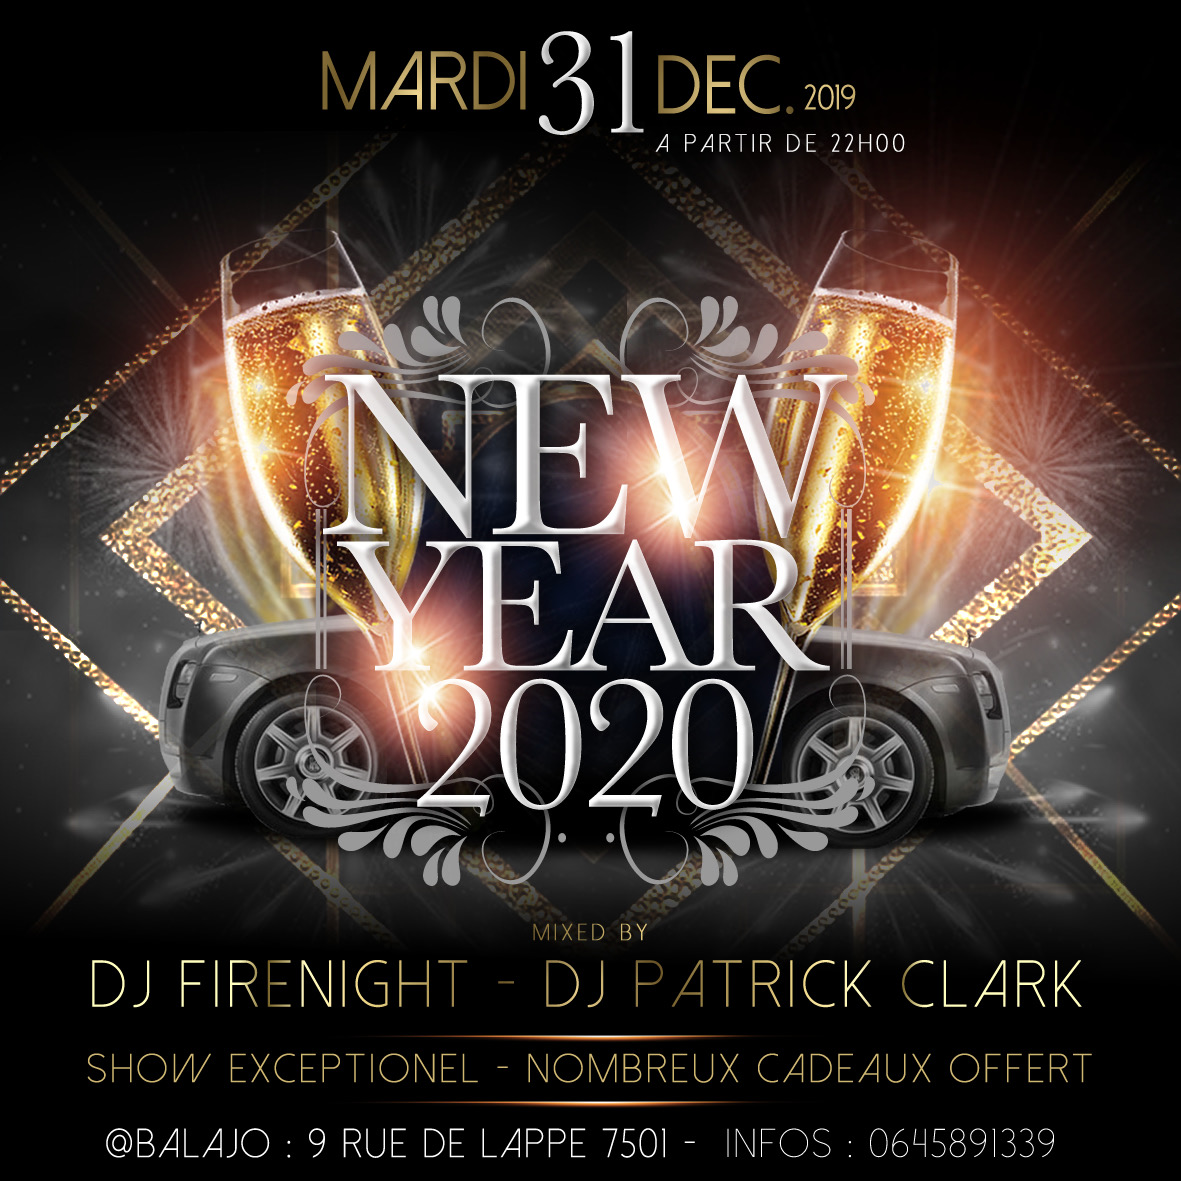 🌟🍾🍷🚀 NEW YEAR EVE CELEBRATION 🍾